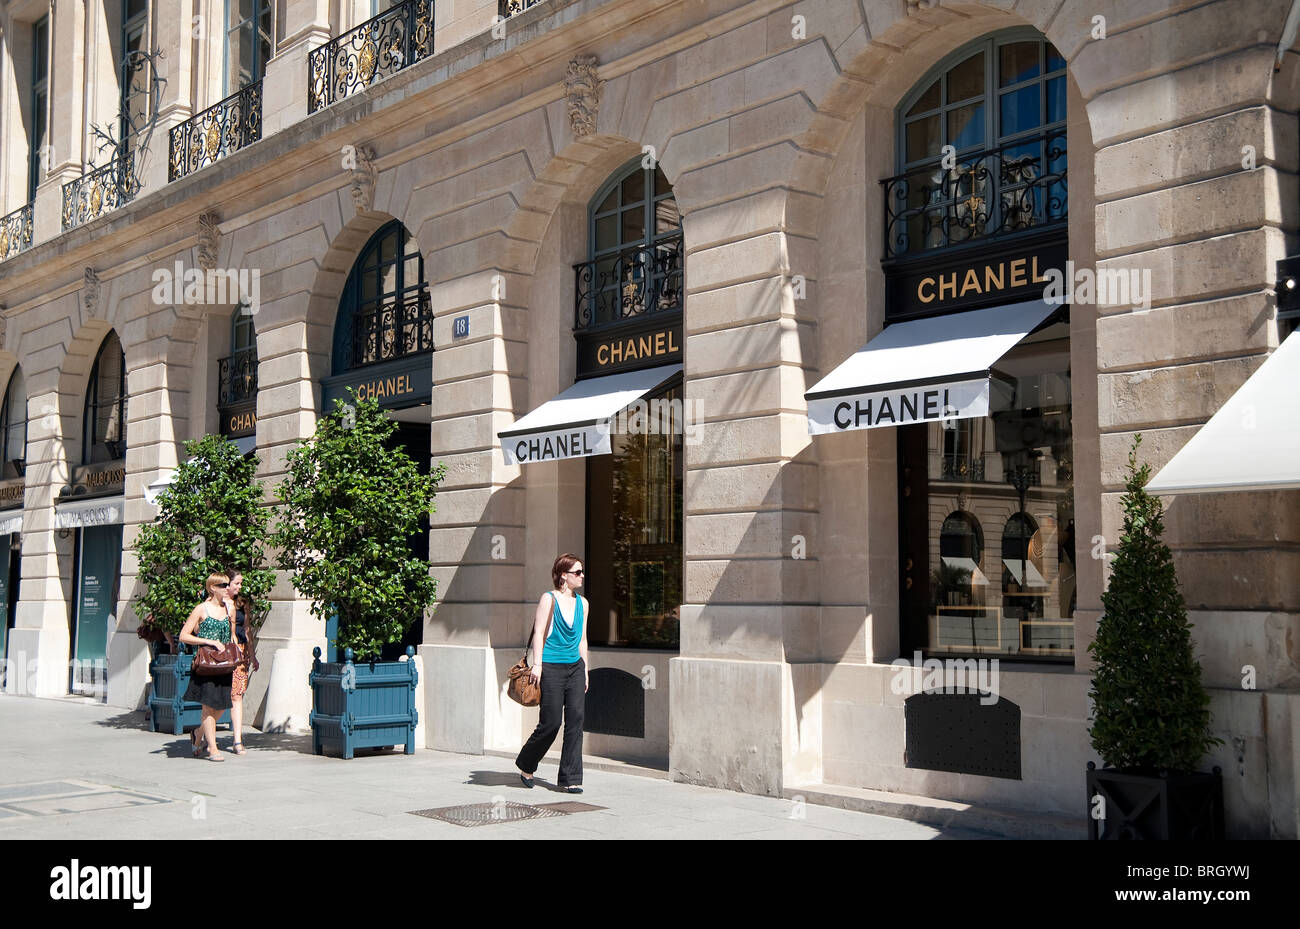 chanel boutique in place vendome paris france stock photo royalty free image 31720574 alamy. Black Bedroom Furniture Sets. Home Design Ideas